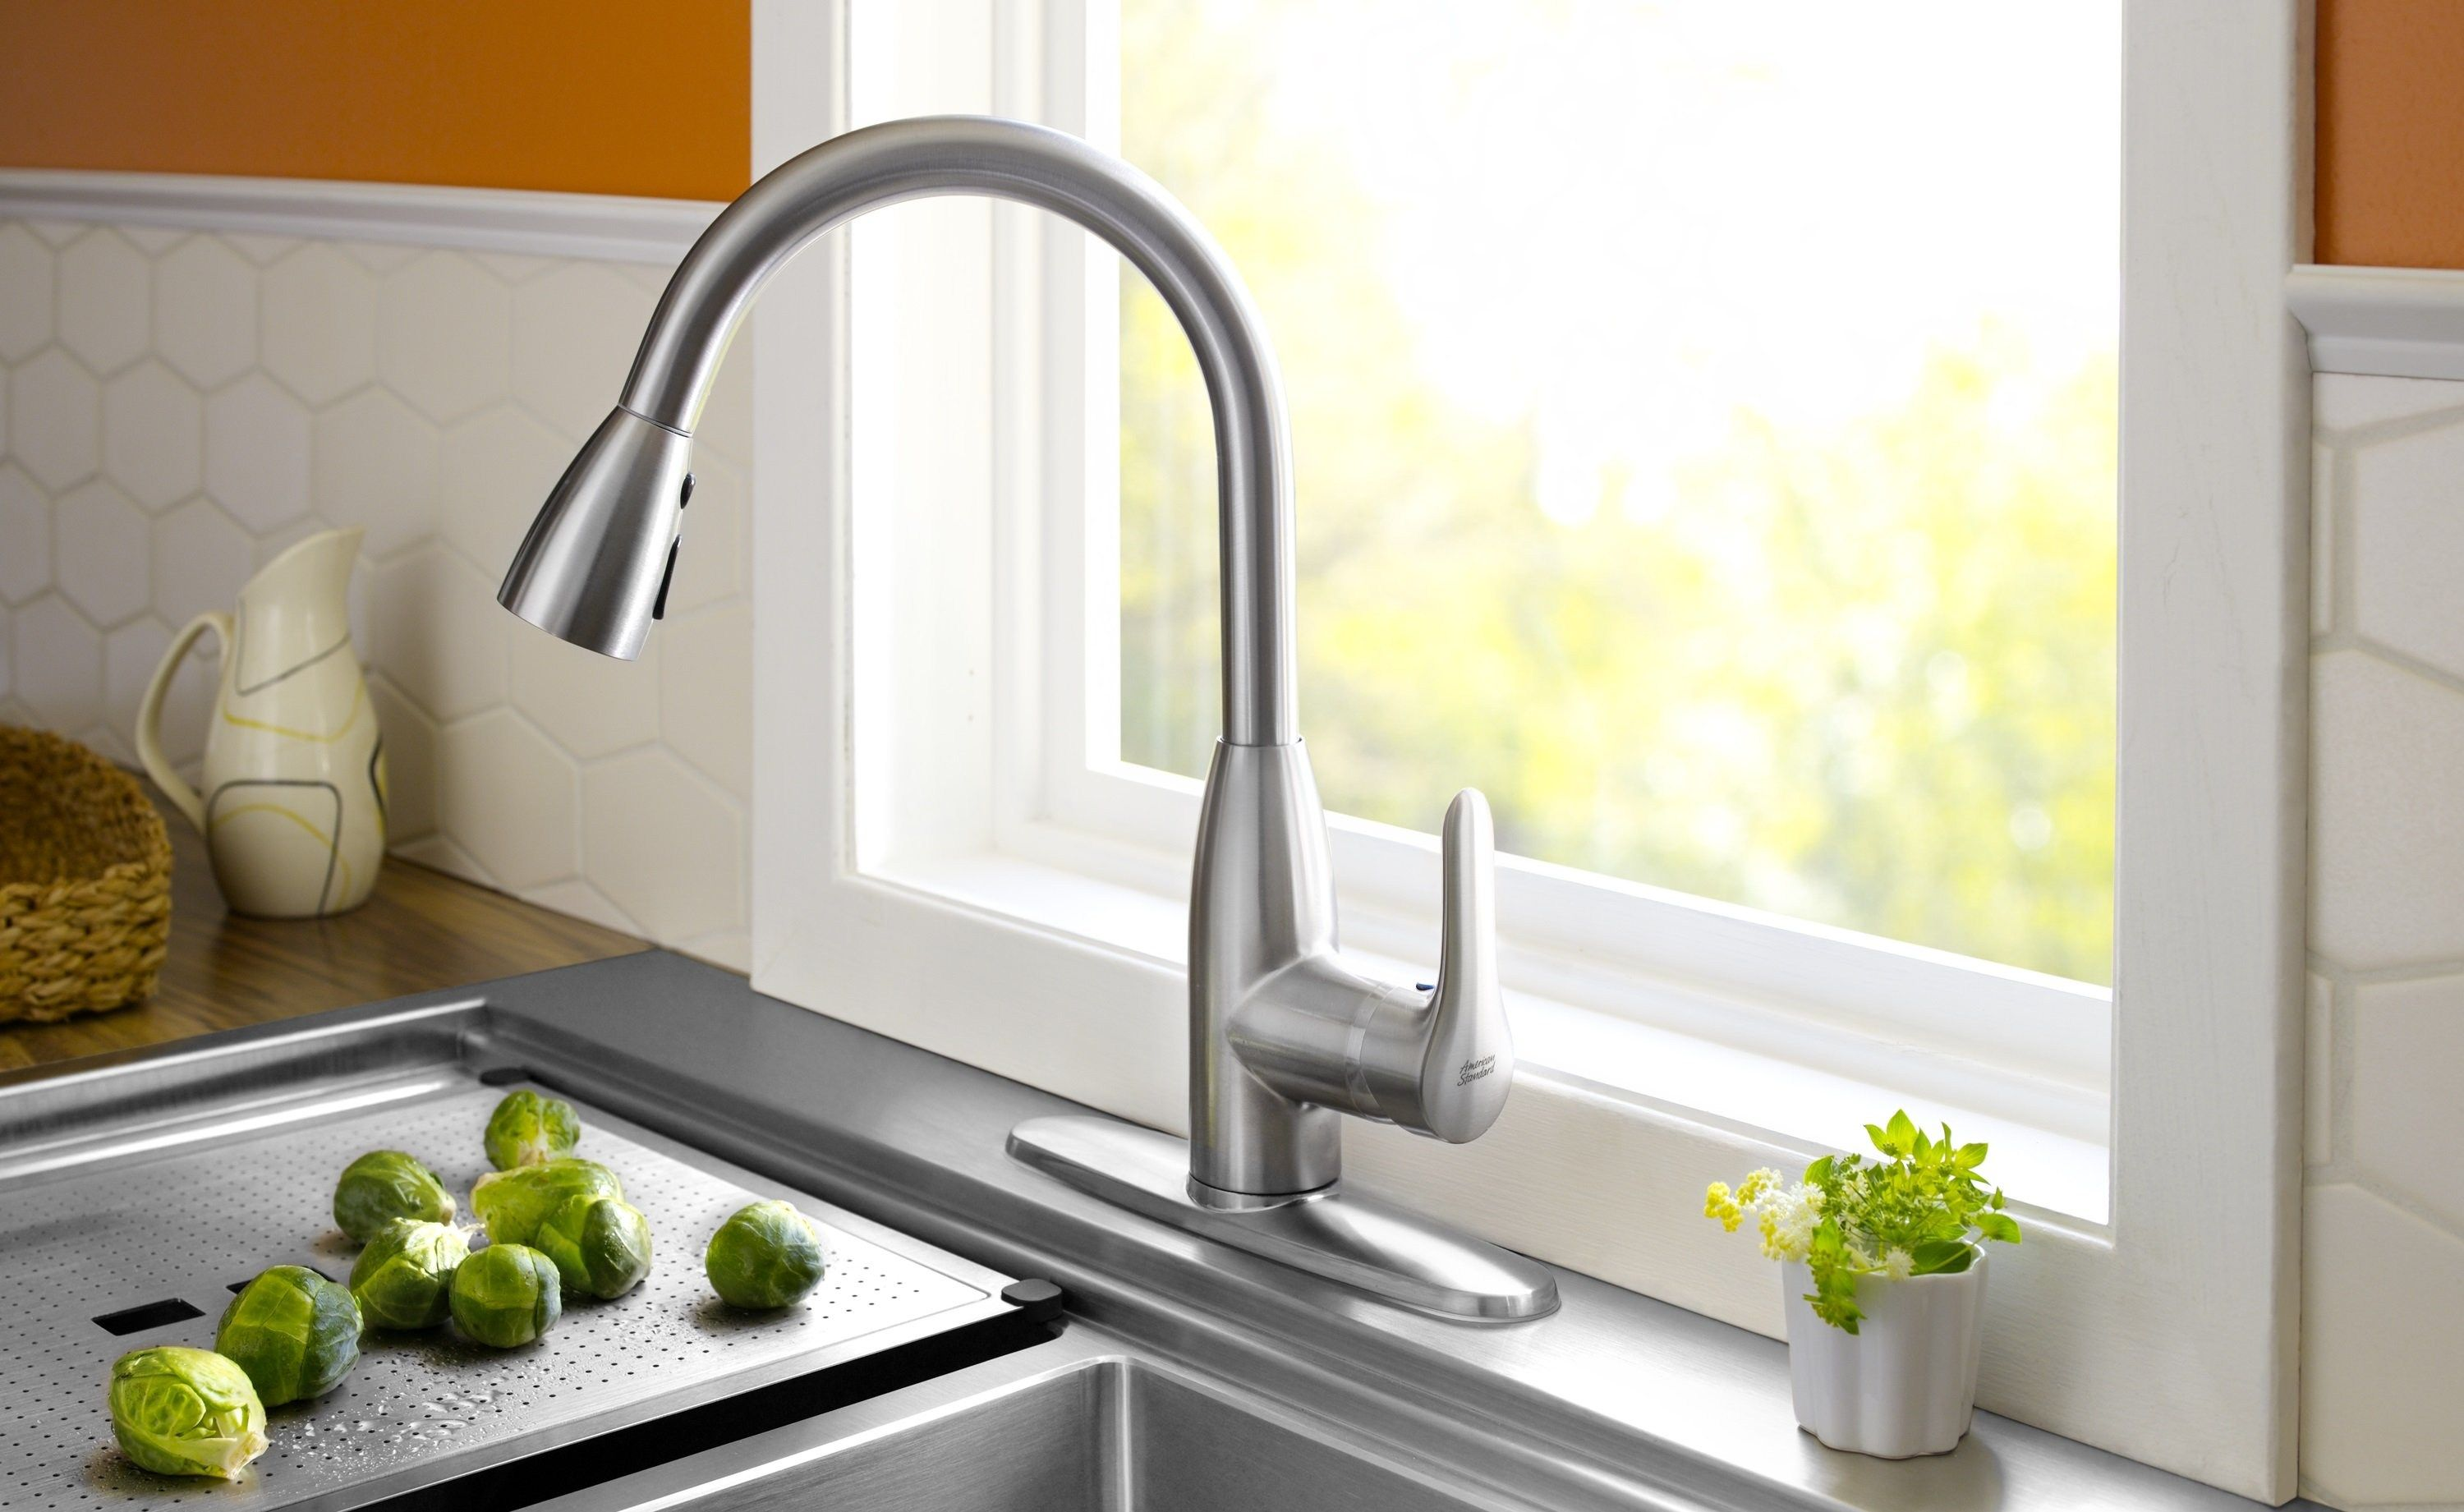 Kitchen Sinks Faucets Kitchen Sink Faucets Bee Home Plan Home Sink Style Kitchen Design Layout Best Kitchen Faucets Modern Kitchen Faucet Kitchen Faucet Design